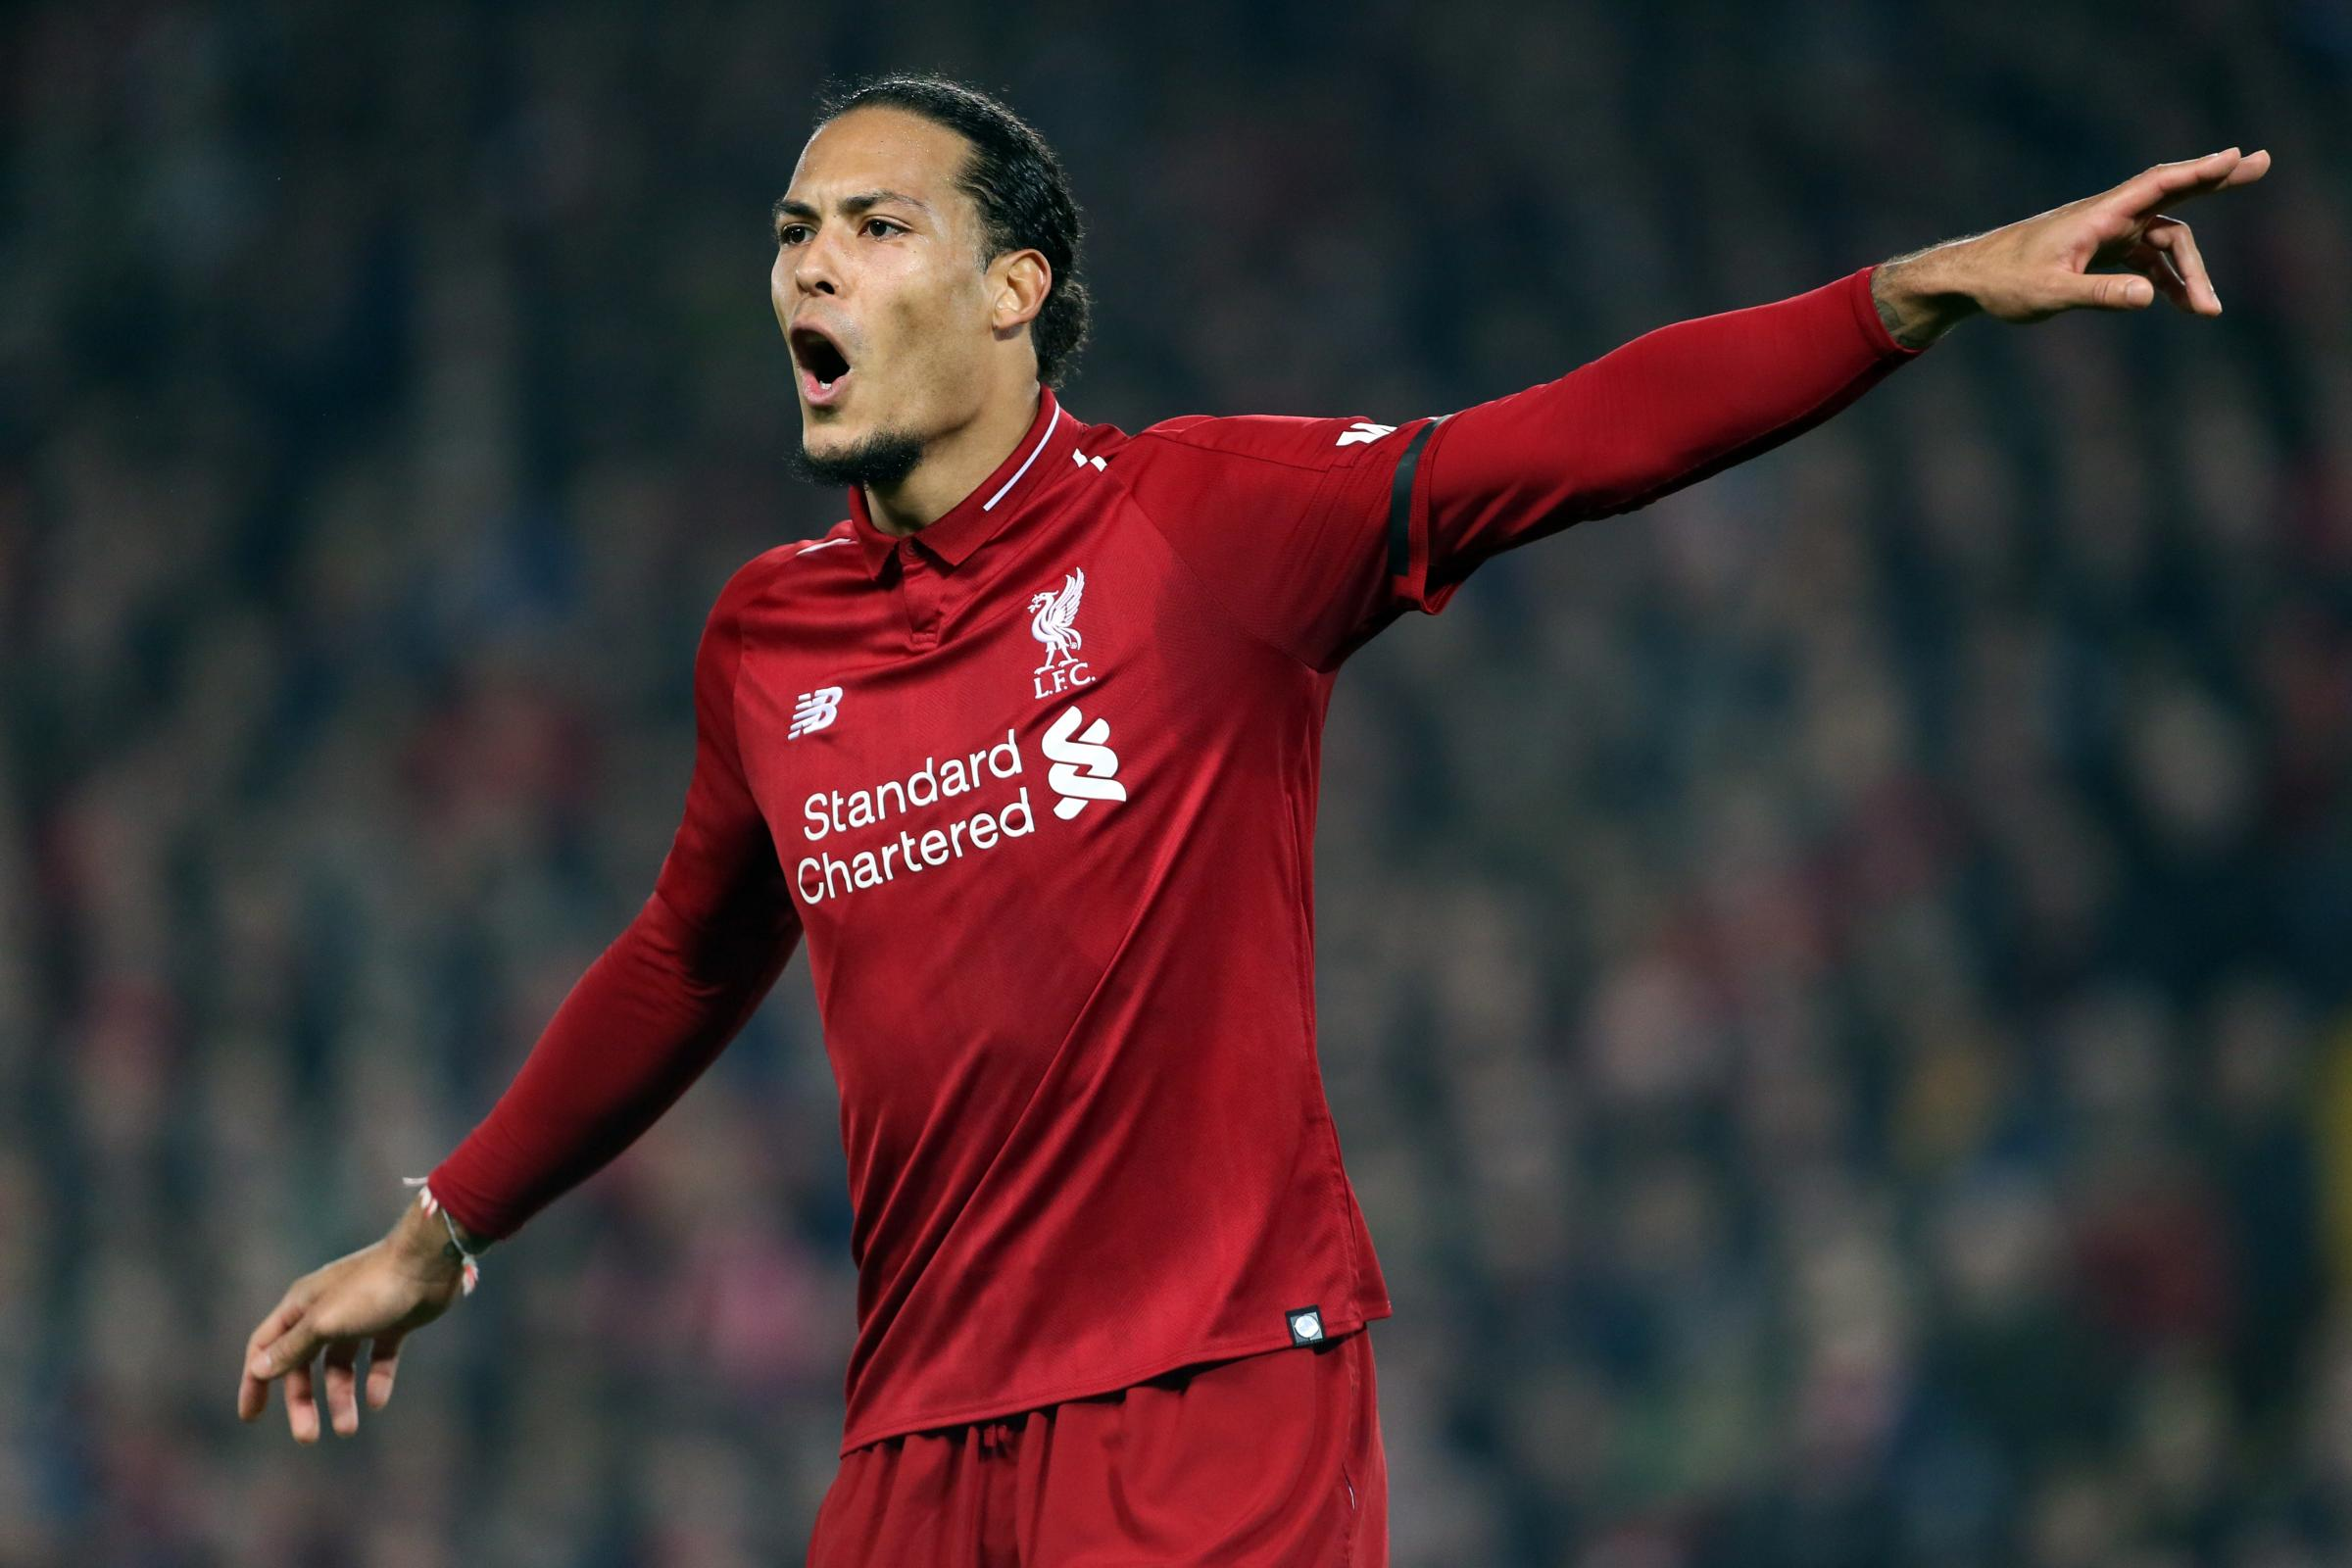 Liverpool's Virgil van Dijk is relishing his Champions League battle with Barcelona and Lionel Messi